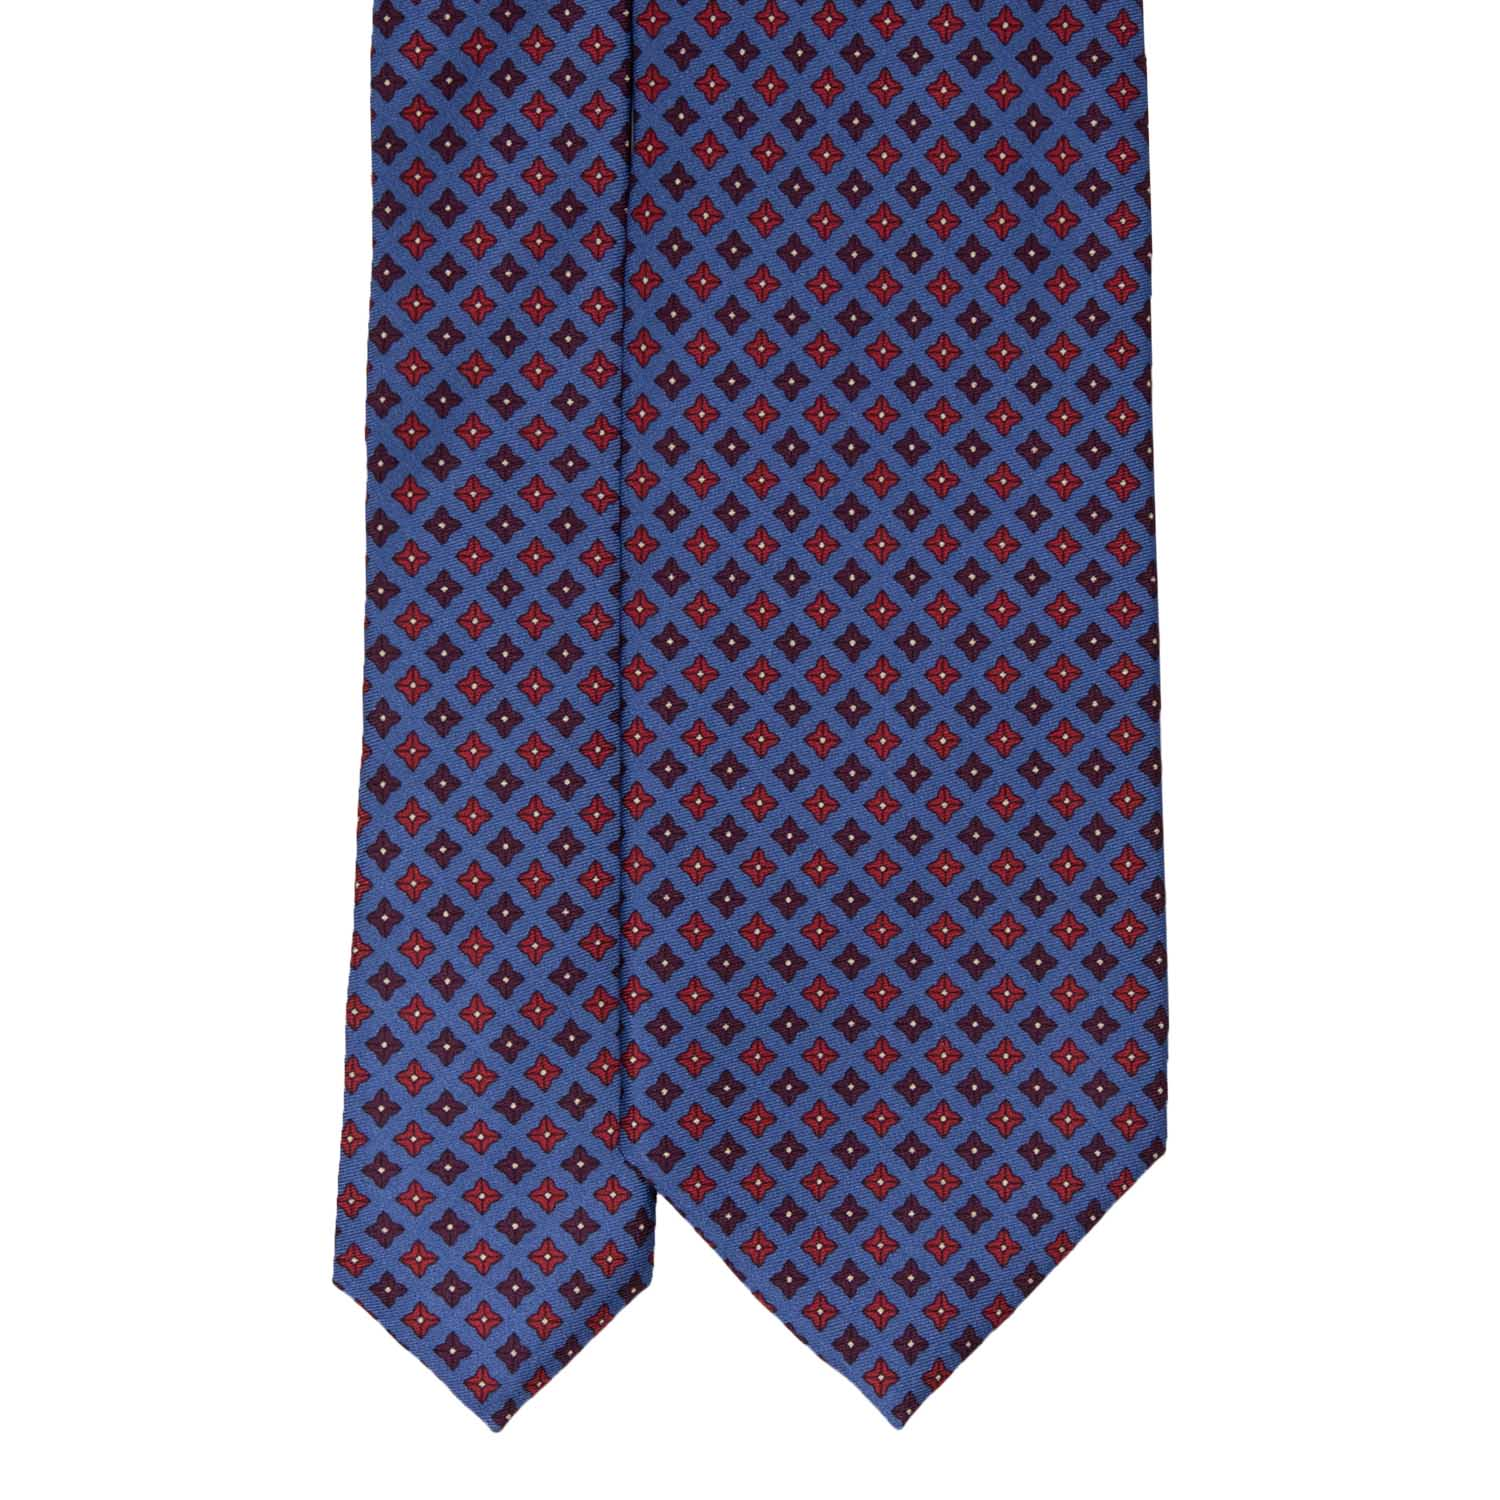 Dusty Blue with Red Square Dots Pattern Silk Tie - serafinesilk